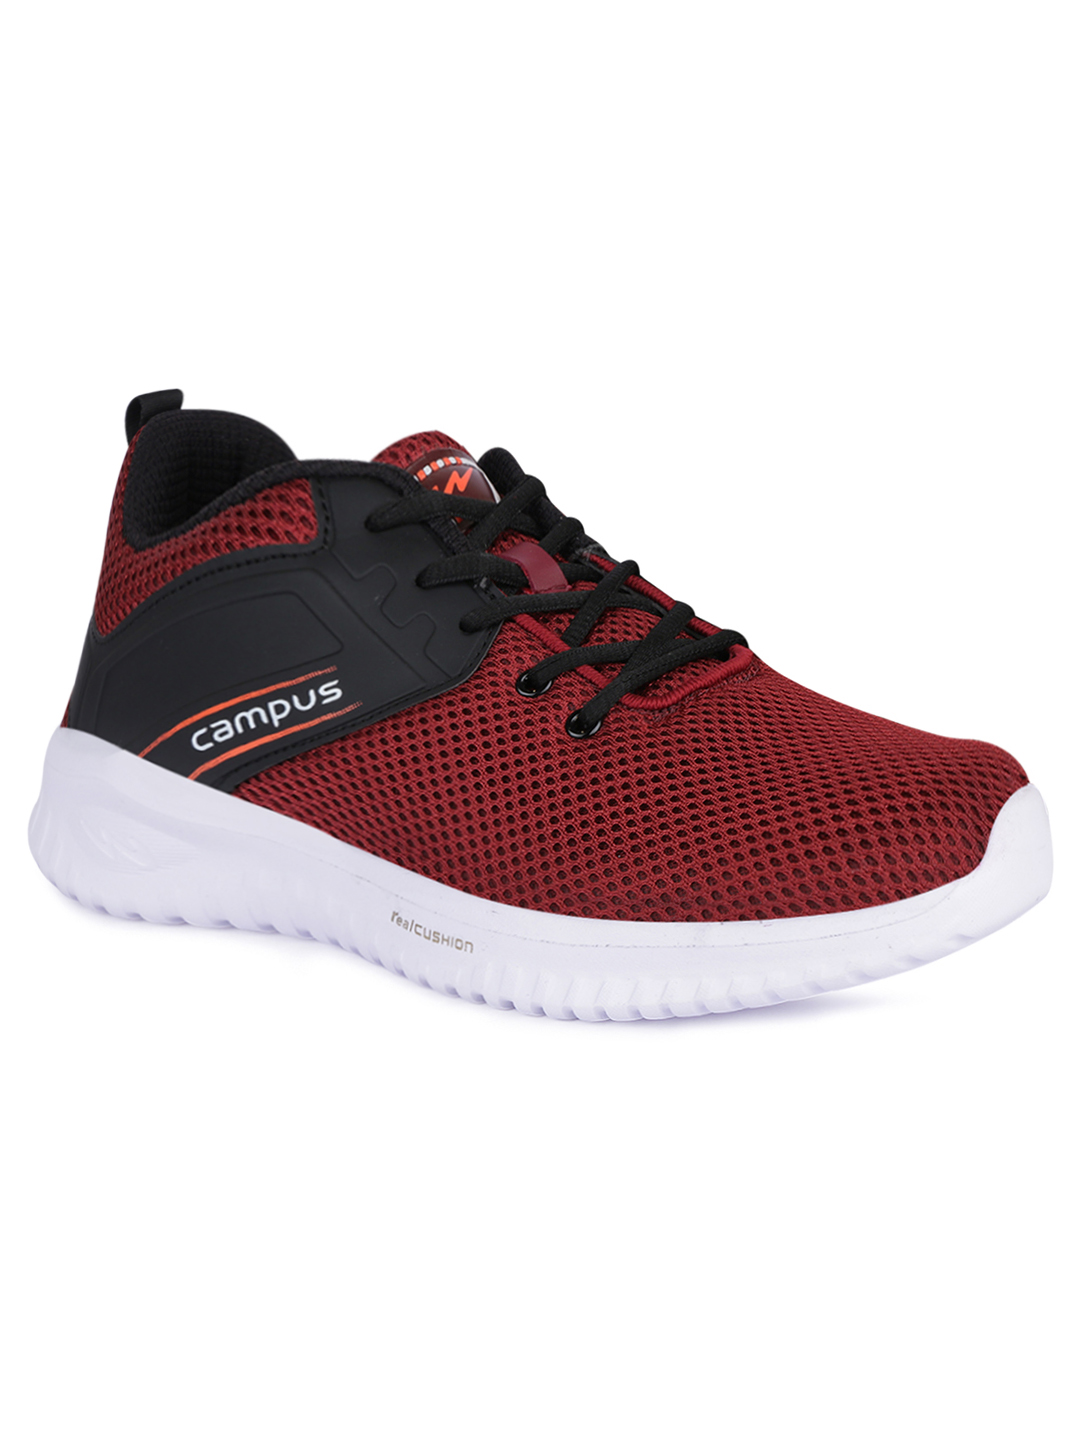 Campus Shoes | Red Grevity Pro Running Shoes